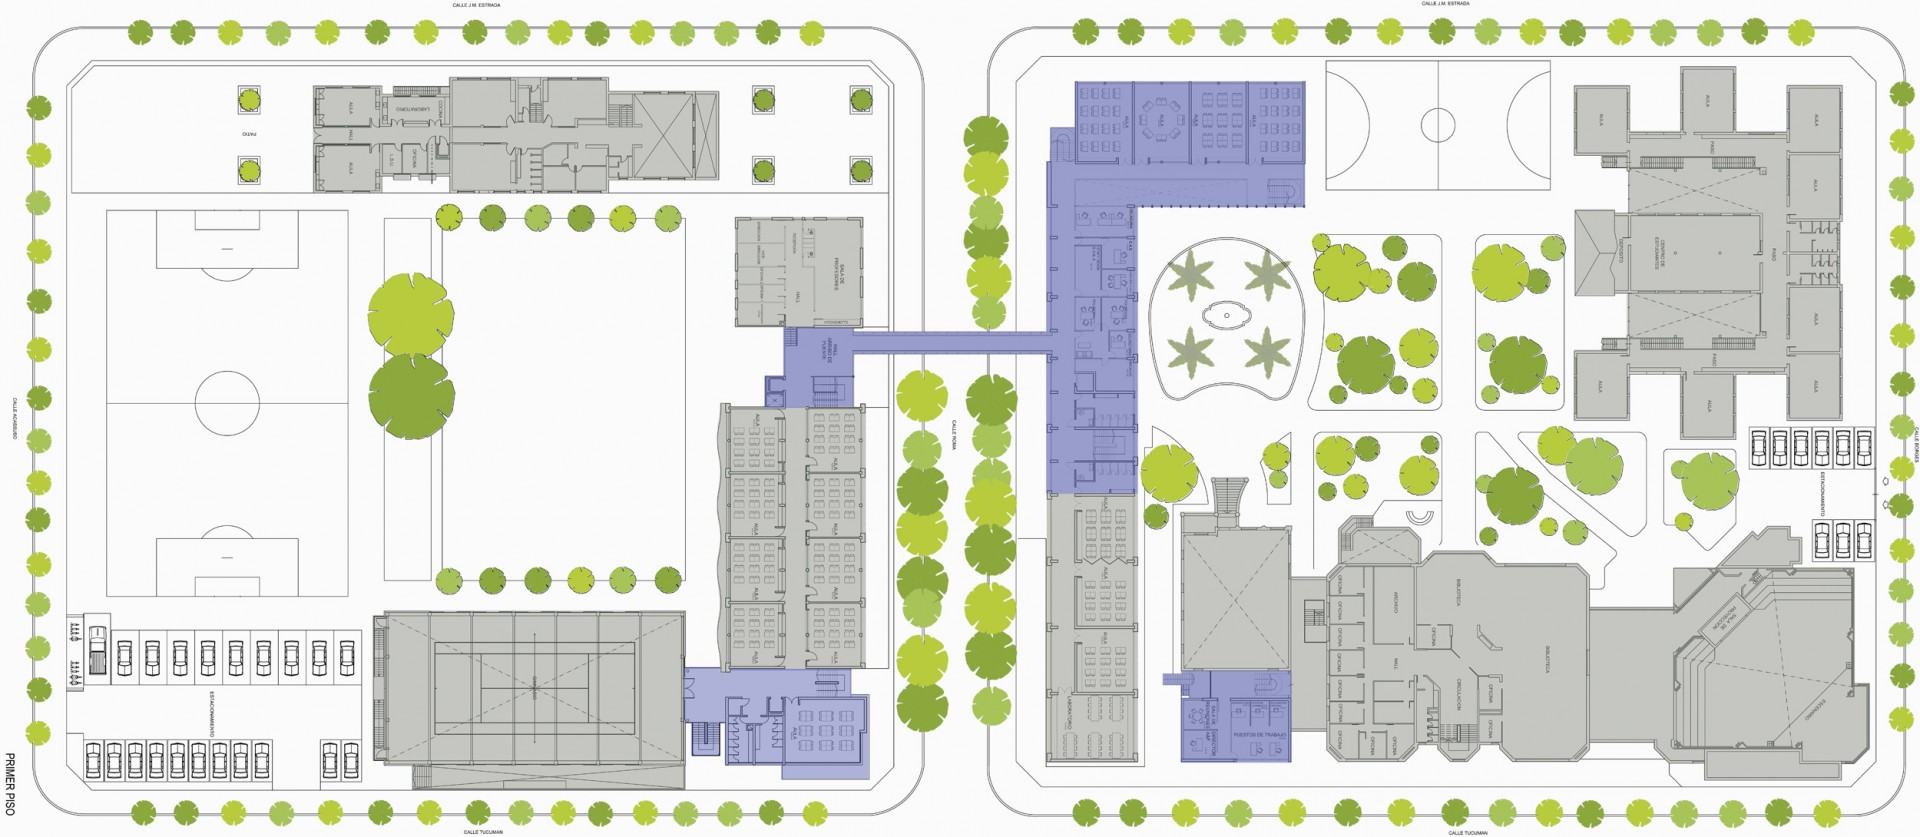 11-northlands-olivos-masterplan